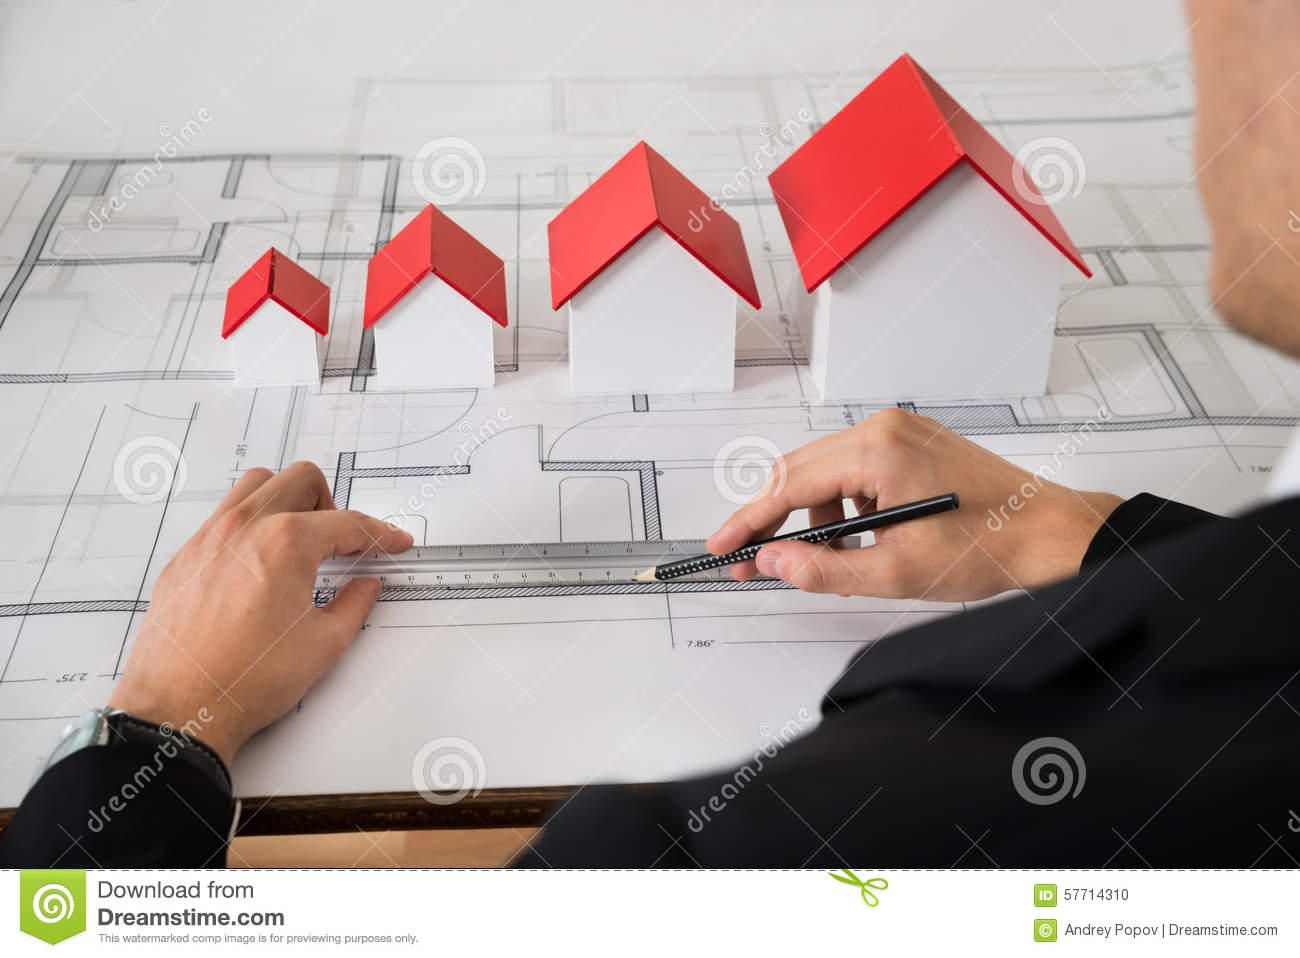 Architect with different size house models on blueprint stock photo download architect with different size house models on blueprint stock photo image of designer malvernweather Choice Image